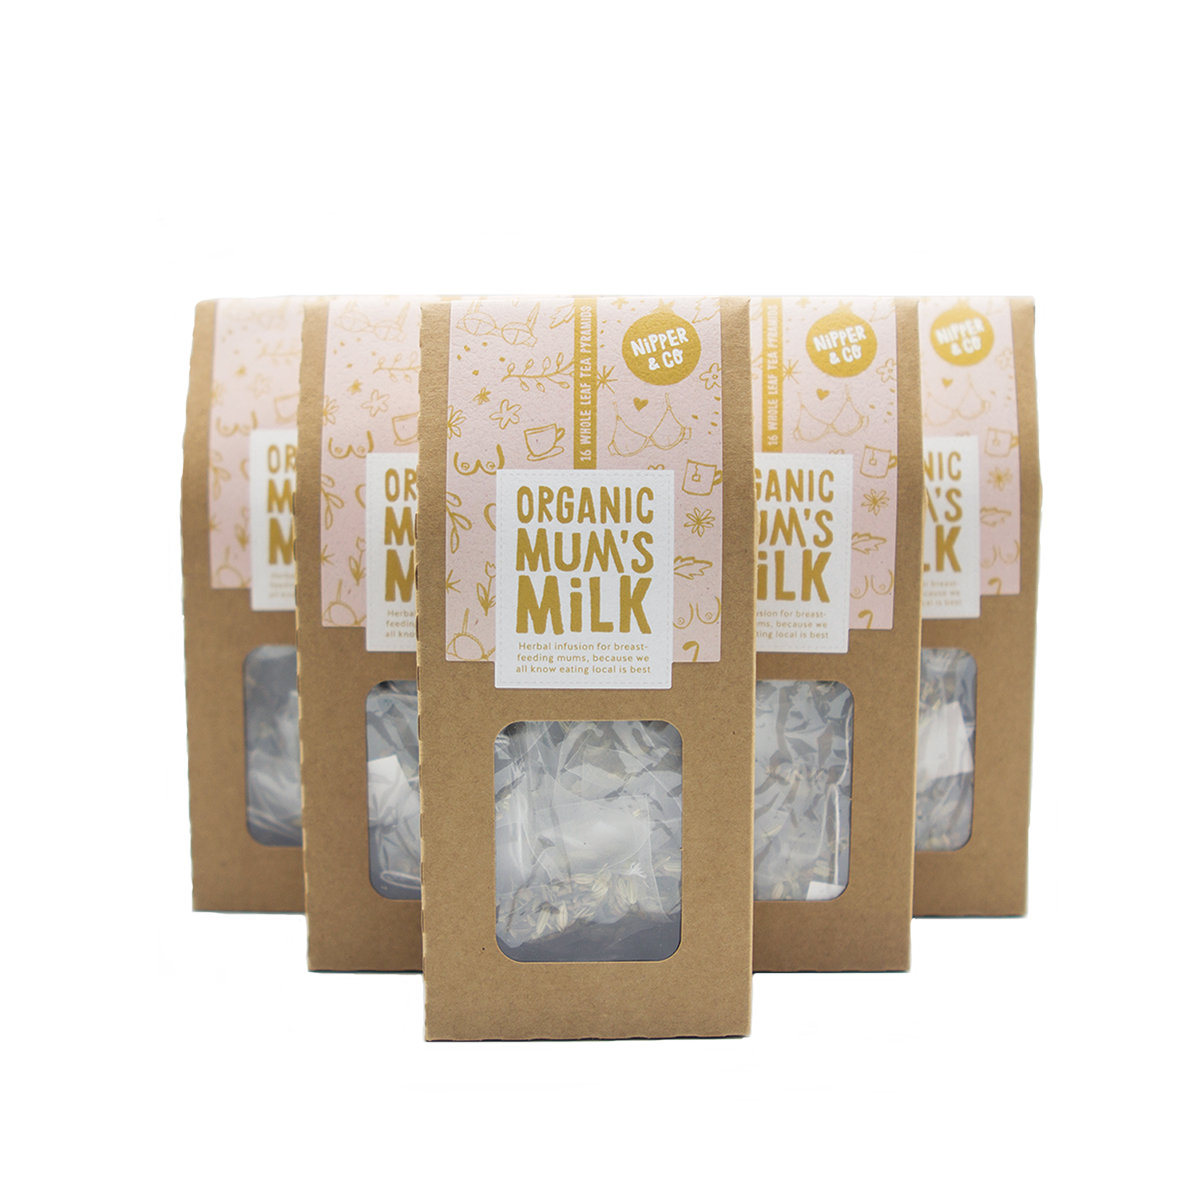 Organic Mum's Milk bundle